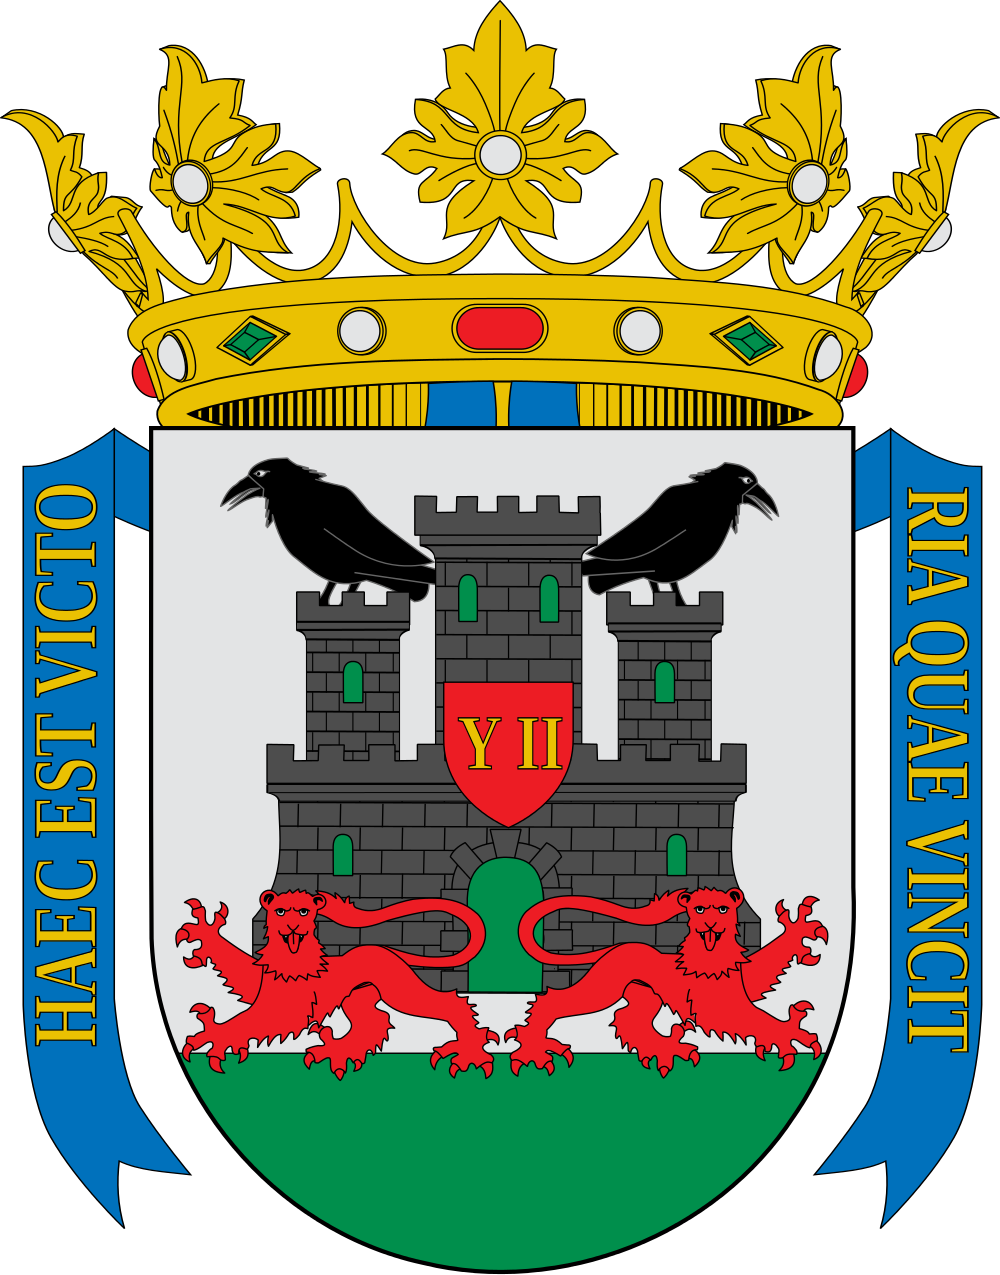 File:Escudo de Vitoria.svg.